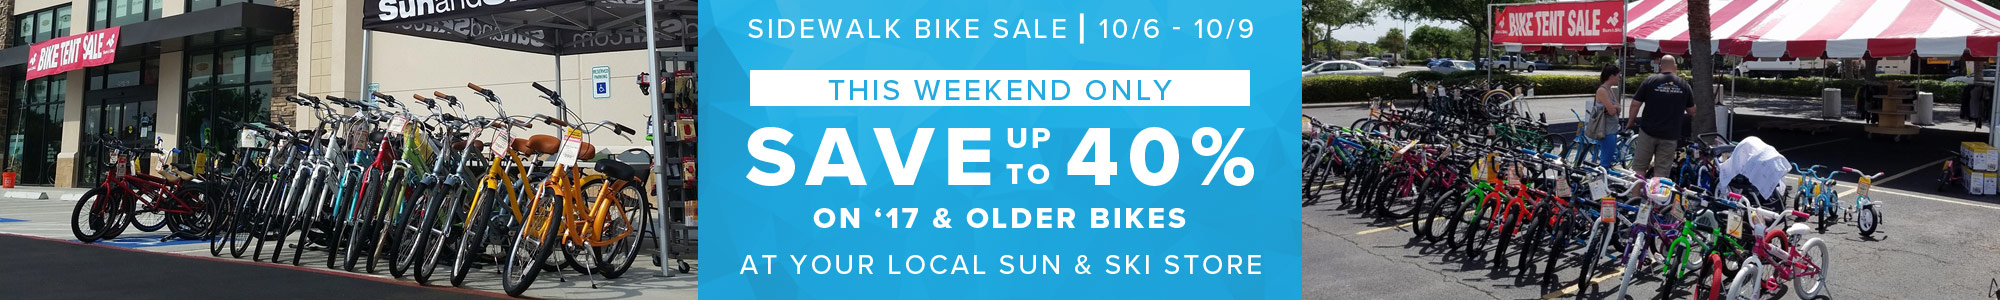 Sidewalk Bike Sale - Save up to 40% on Bikes from 10/6-10/9 at your local Sun & Ski Store.